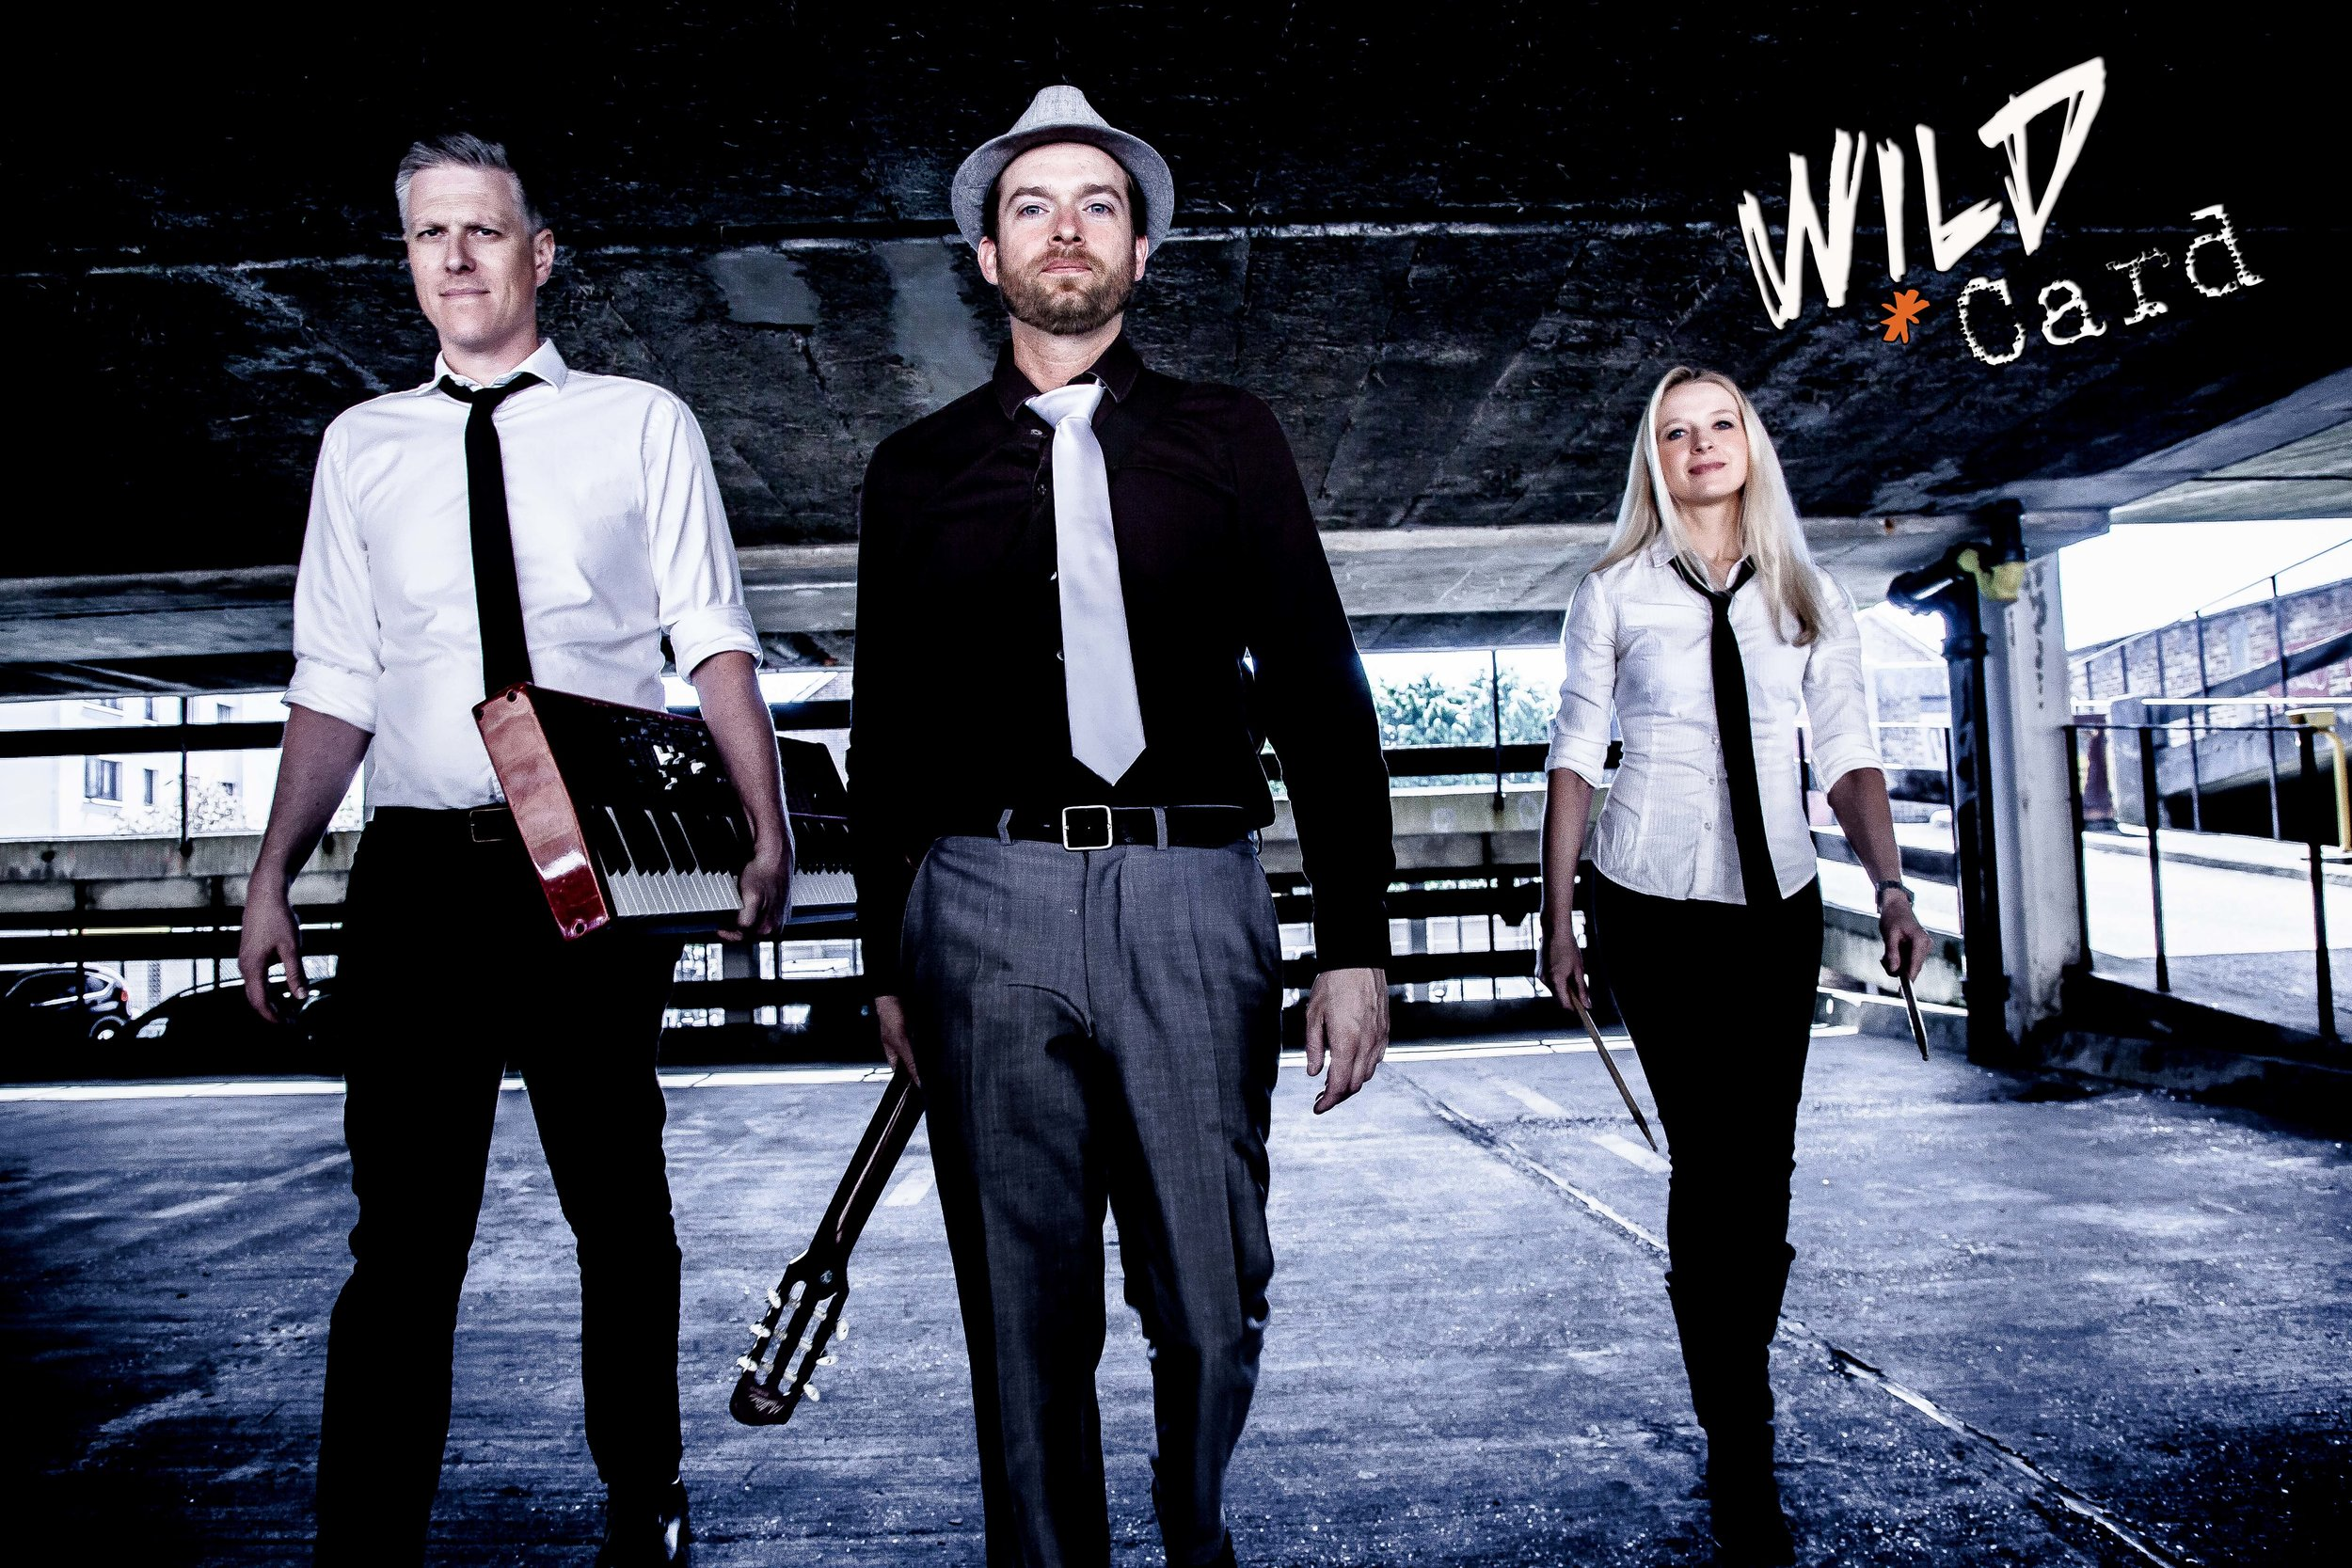 WILD CARD - JAZZDOOR 7PM / MUSIC 8.30PM£10 / £9 / £5 (BK)EMAIL TO RESERVE